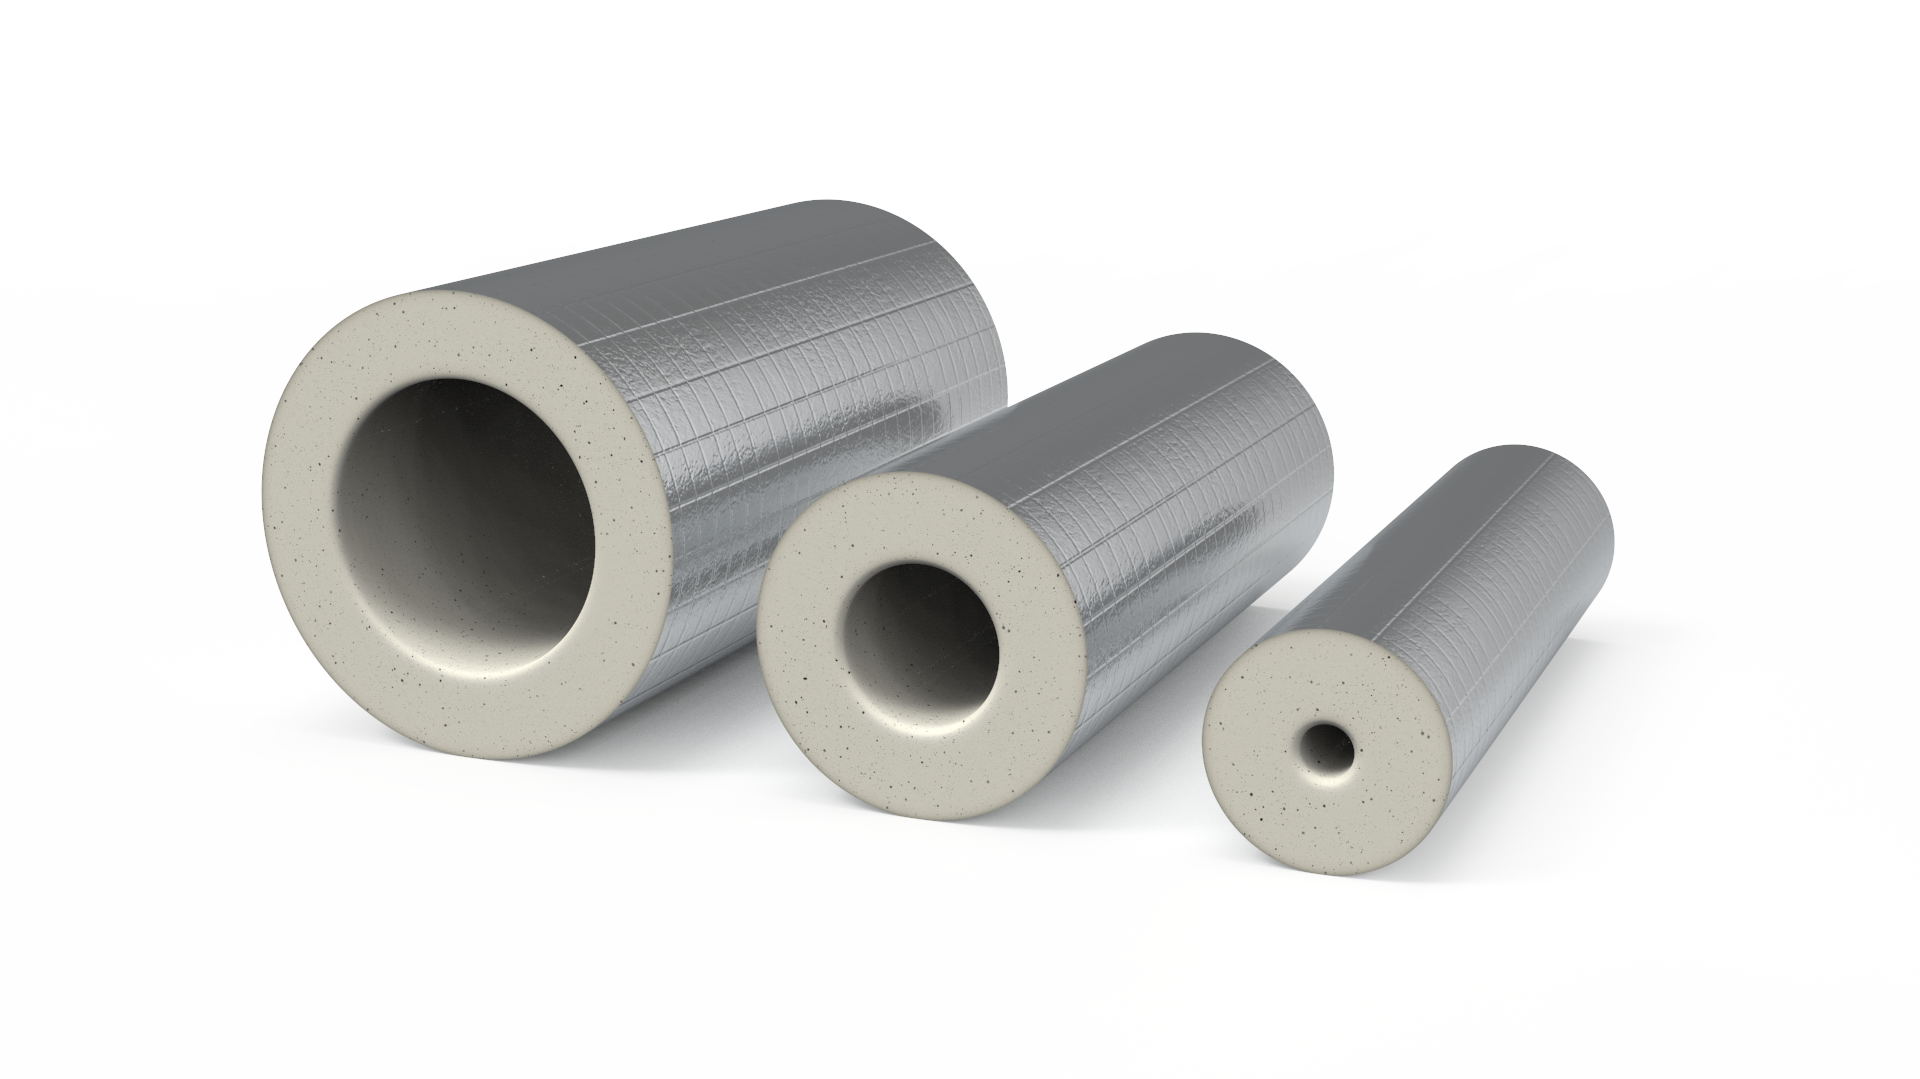 fp-pipe-fire-sleeve-product